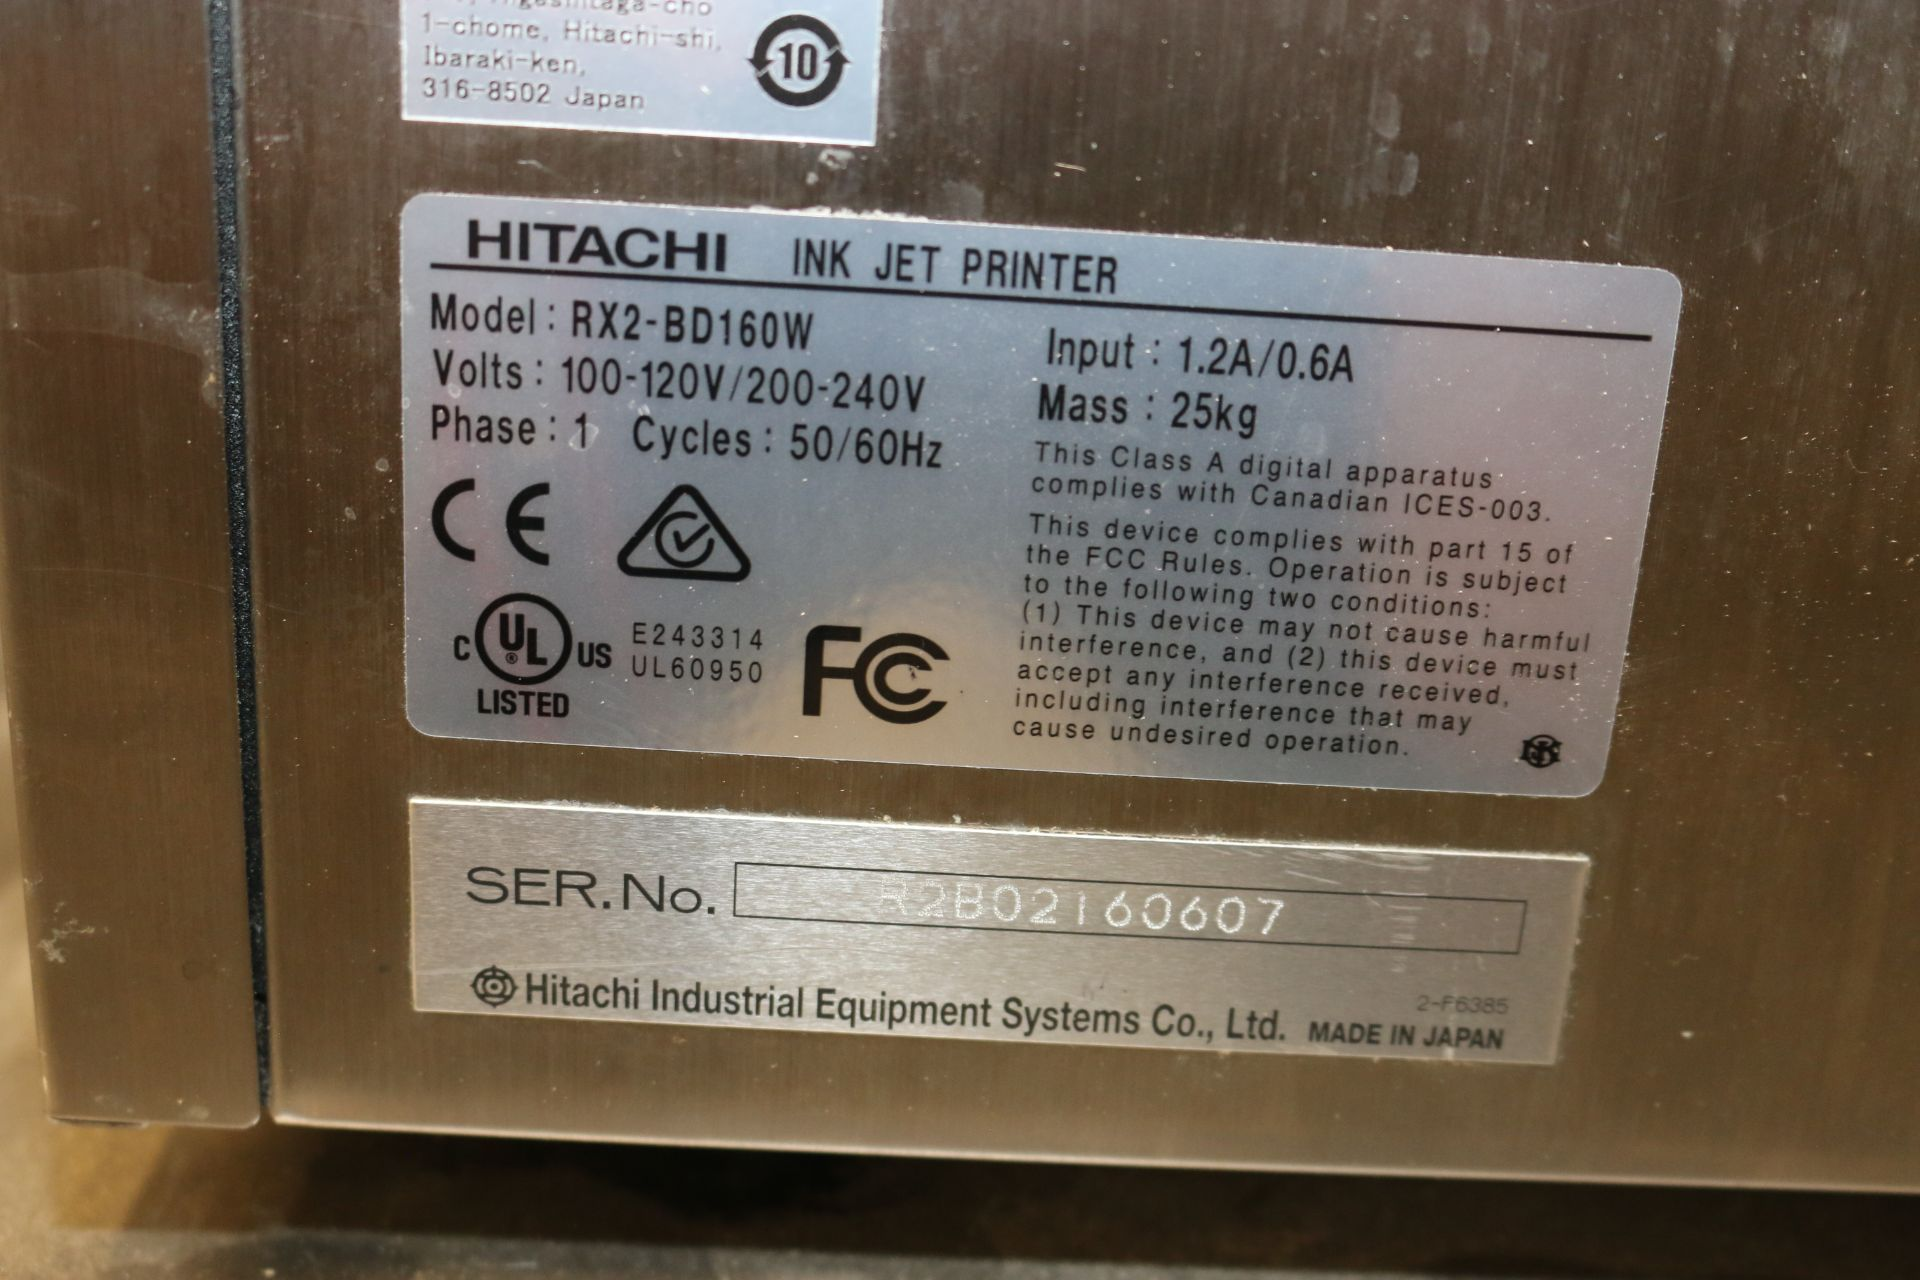 Lot 163 - Hitachi Ink Jet Printer, M/N RX2-B, S/N R2B02160607, with Ink Head, with Touchscreen Display, with